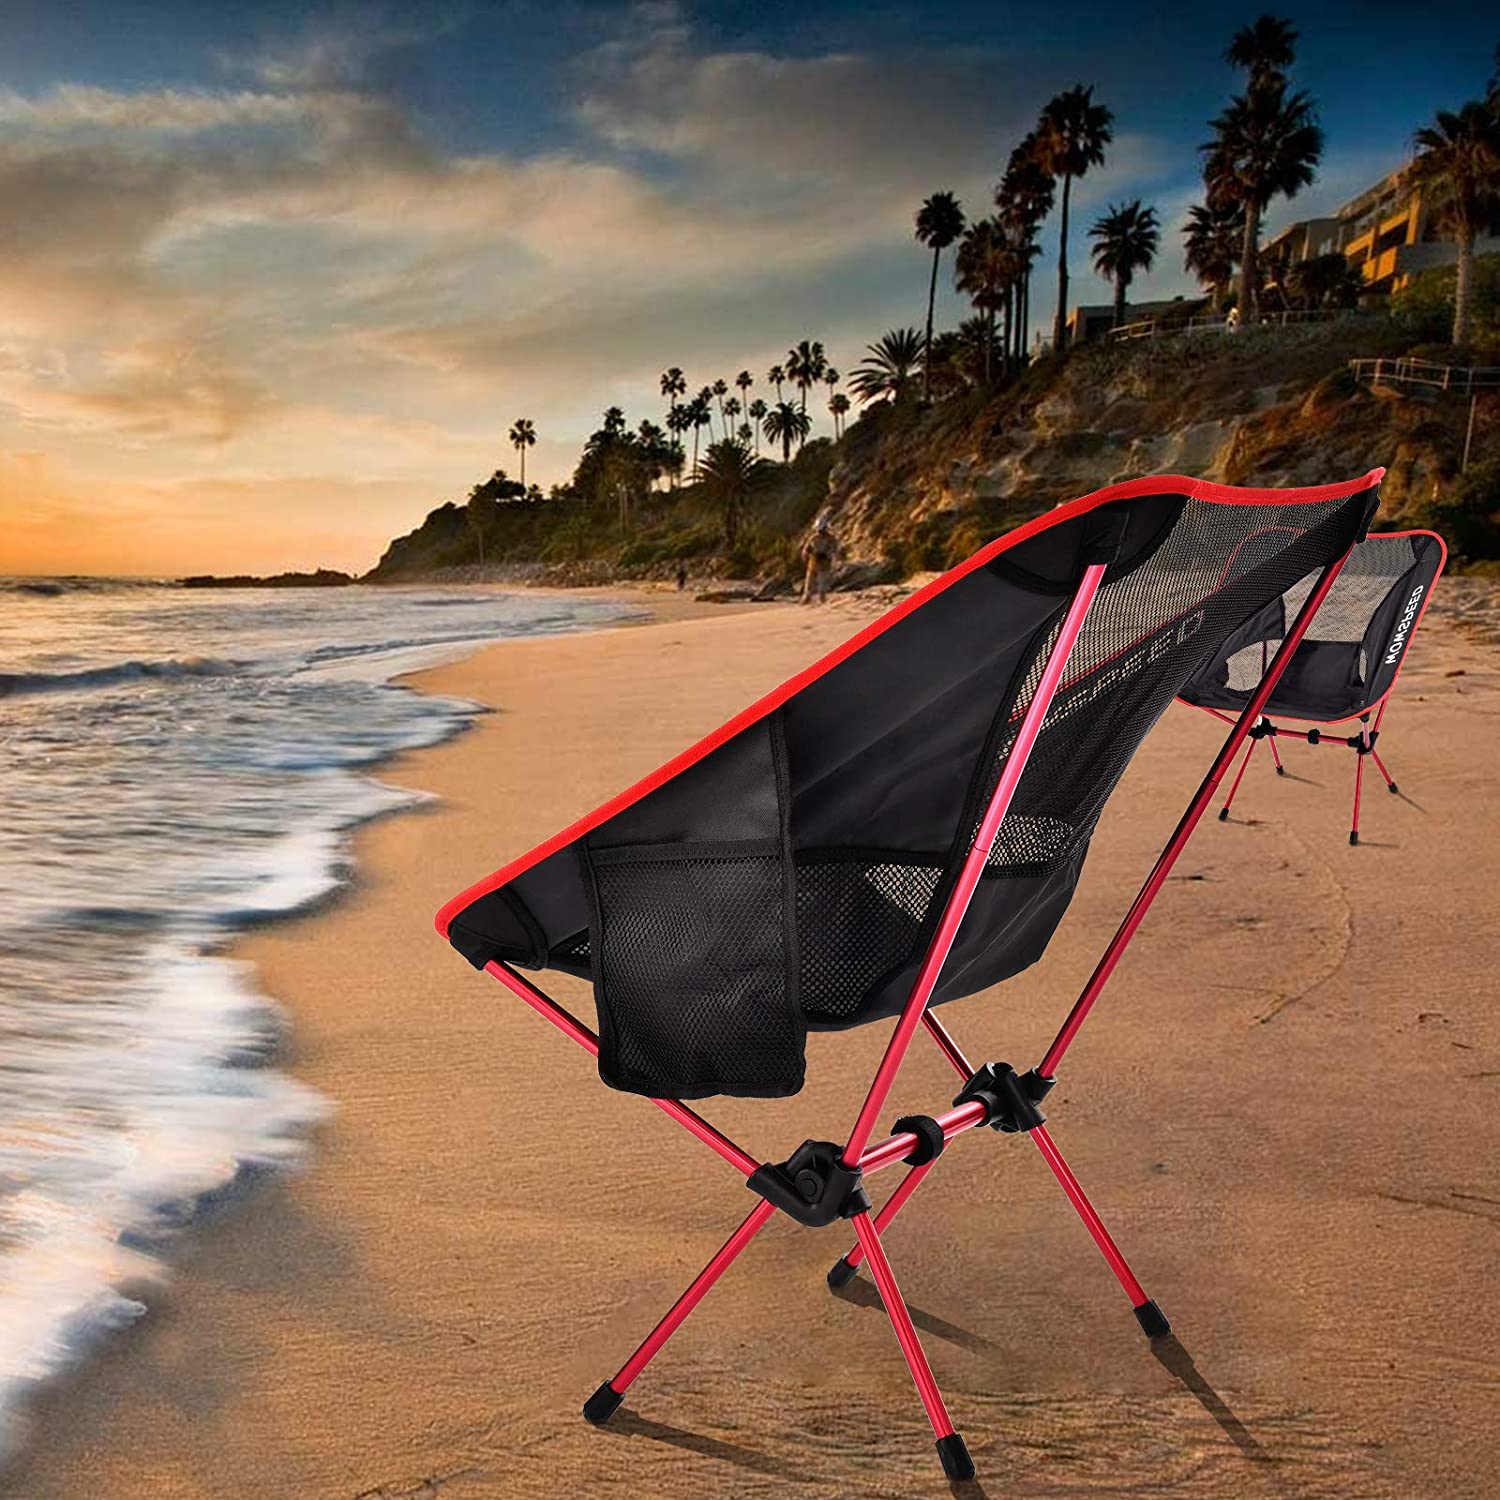 adjustable height for outdoor camping Black beach camping chairs foldable foldable folding chairs up to 120 kg hiking CosHall camping chairs with carrying bag backpacking trips picnics trips